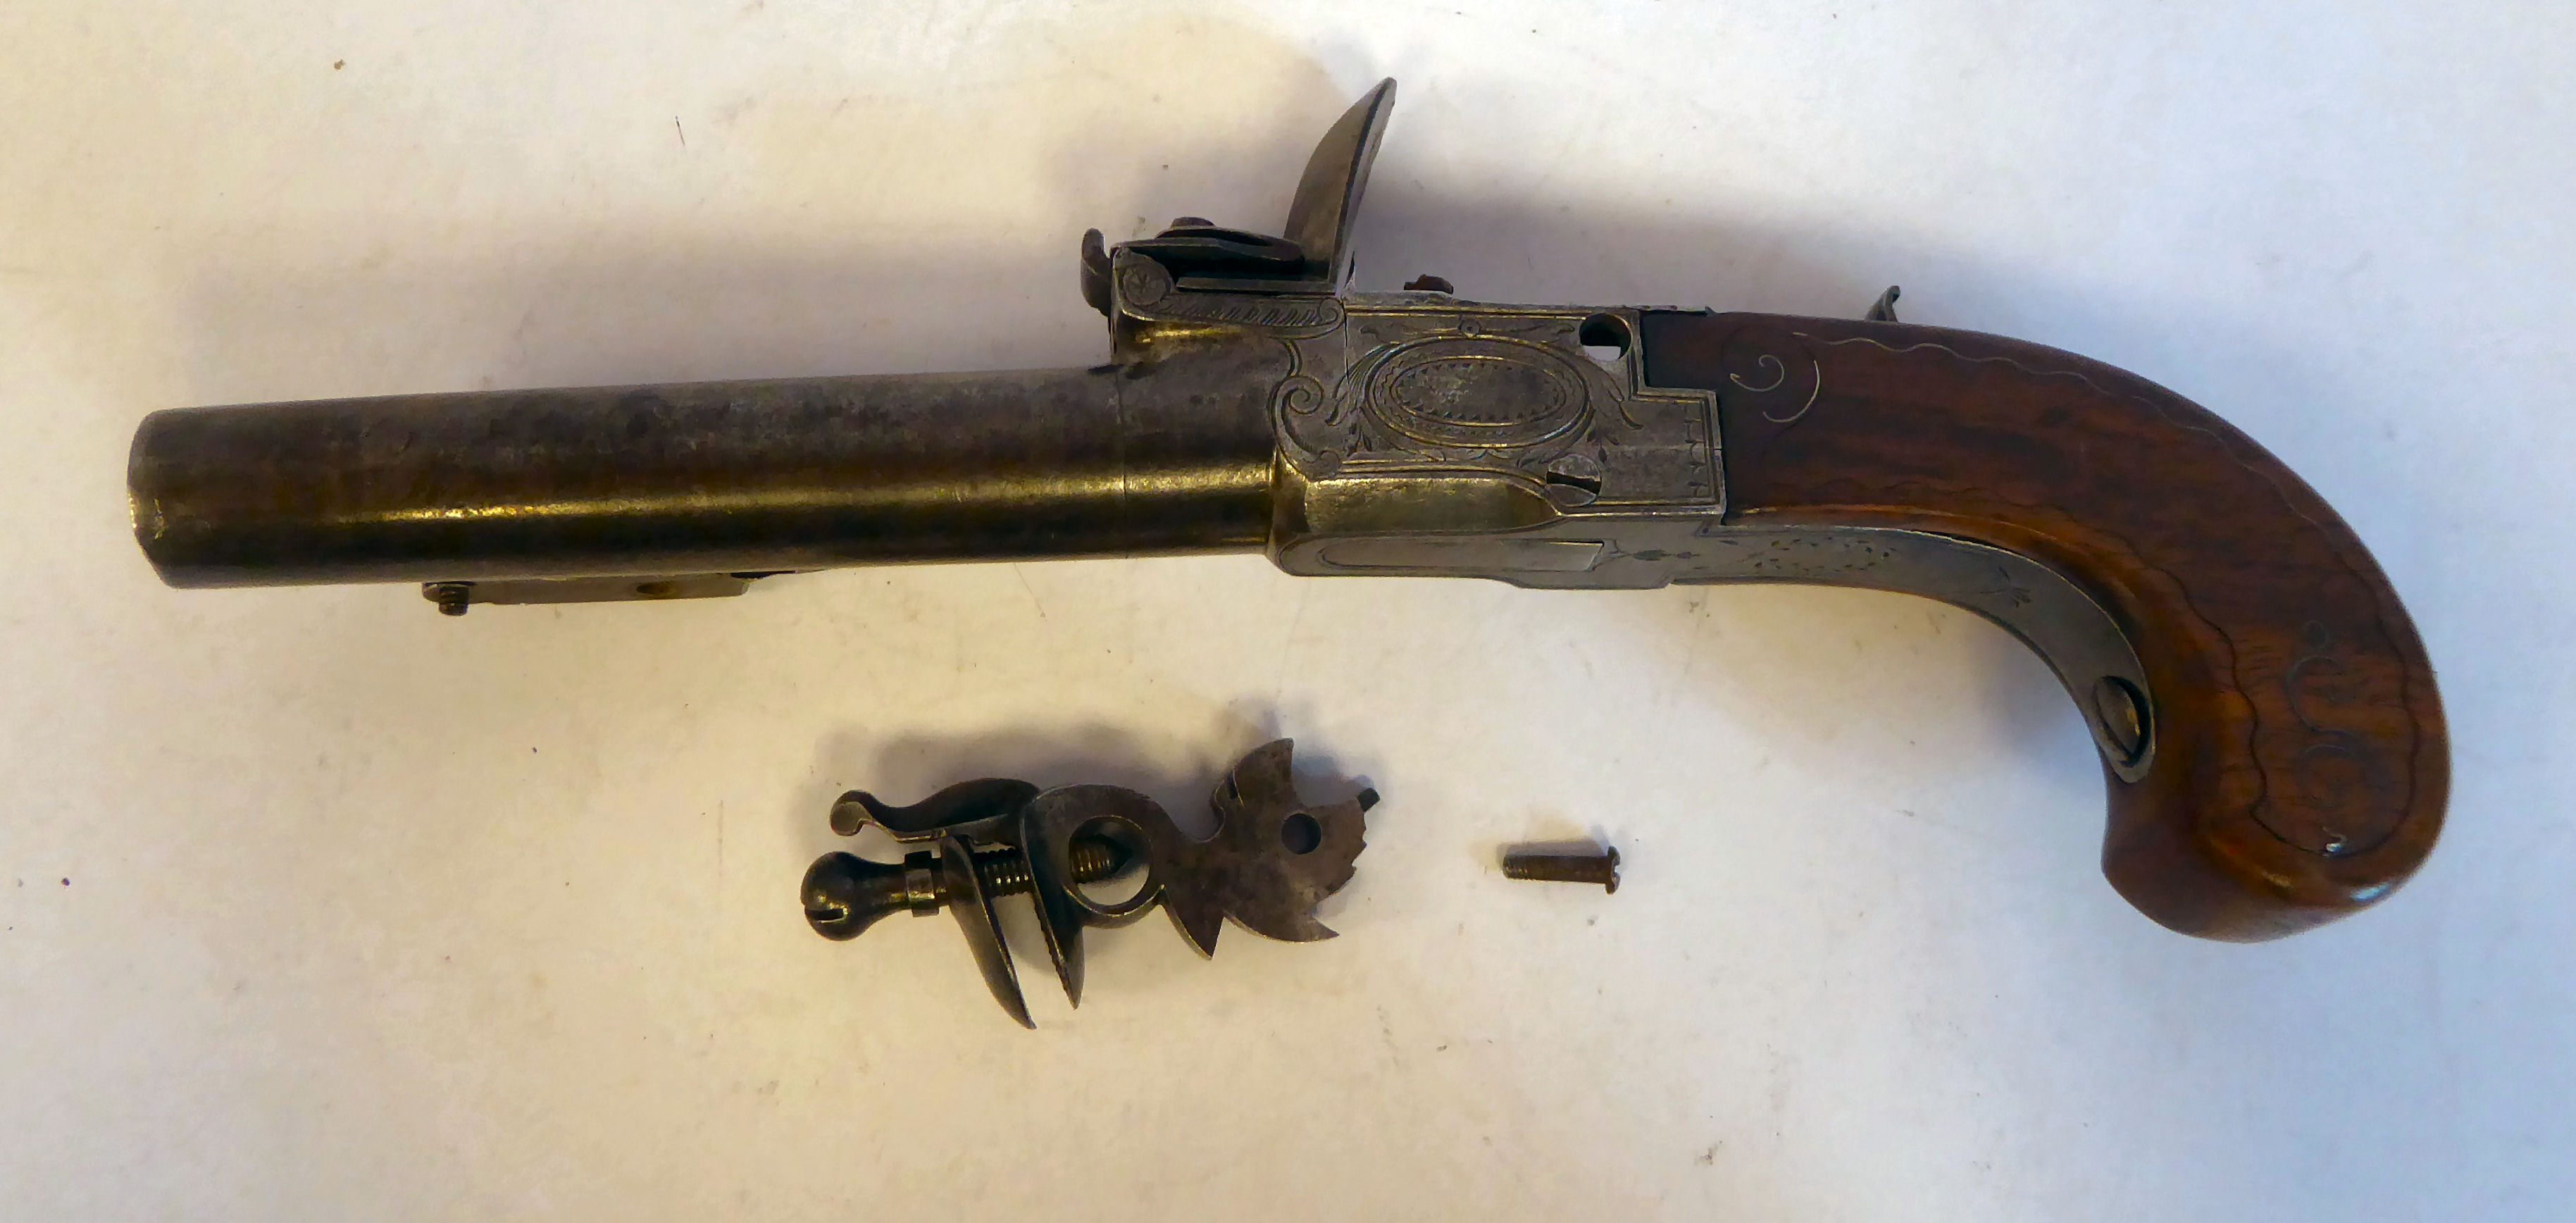 A 19thC Continental flintlock pistol with a folding trigger, inlaid wire ornament on the walnut